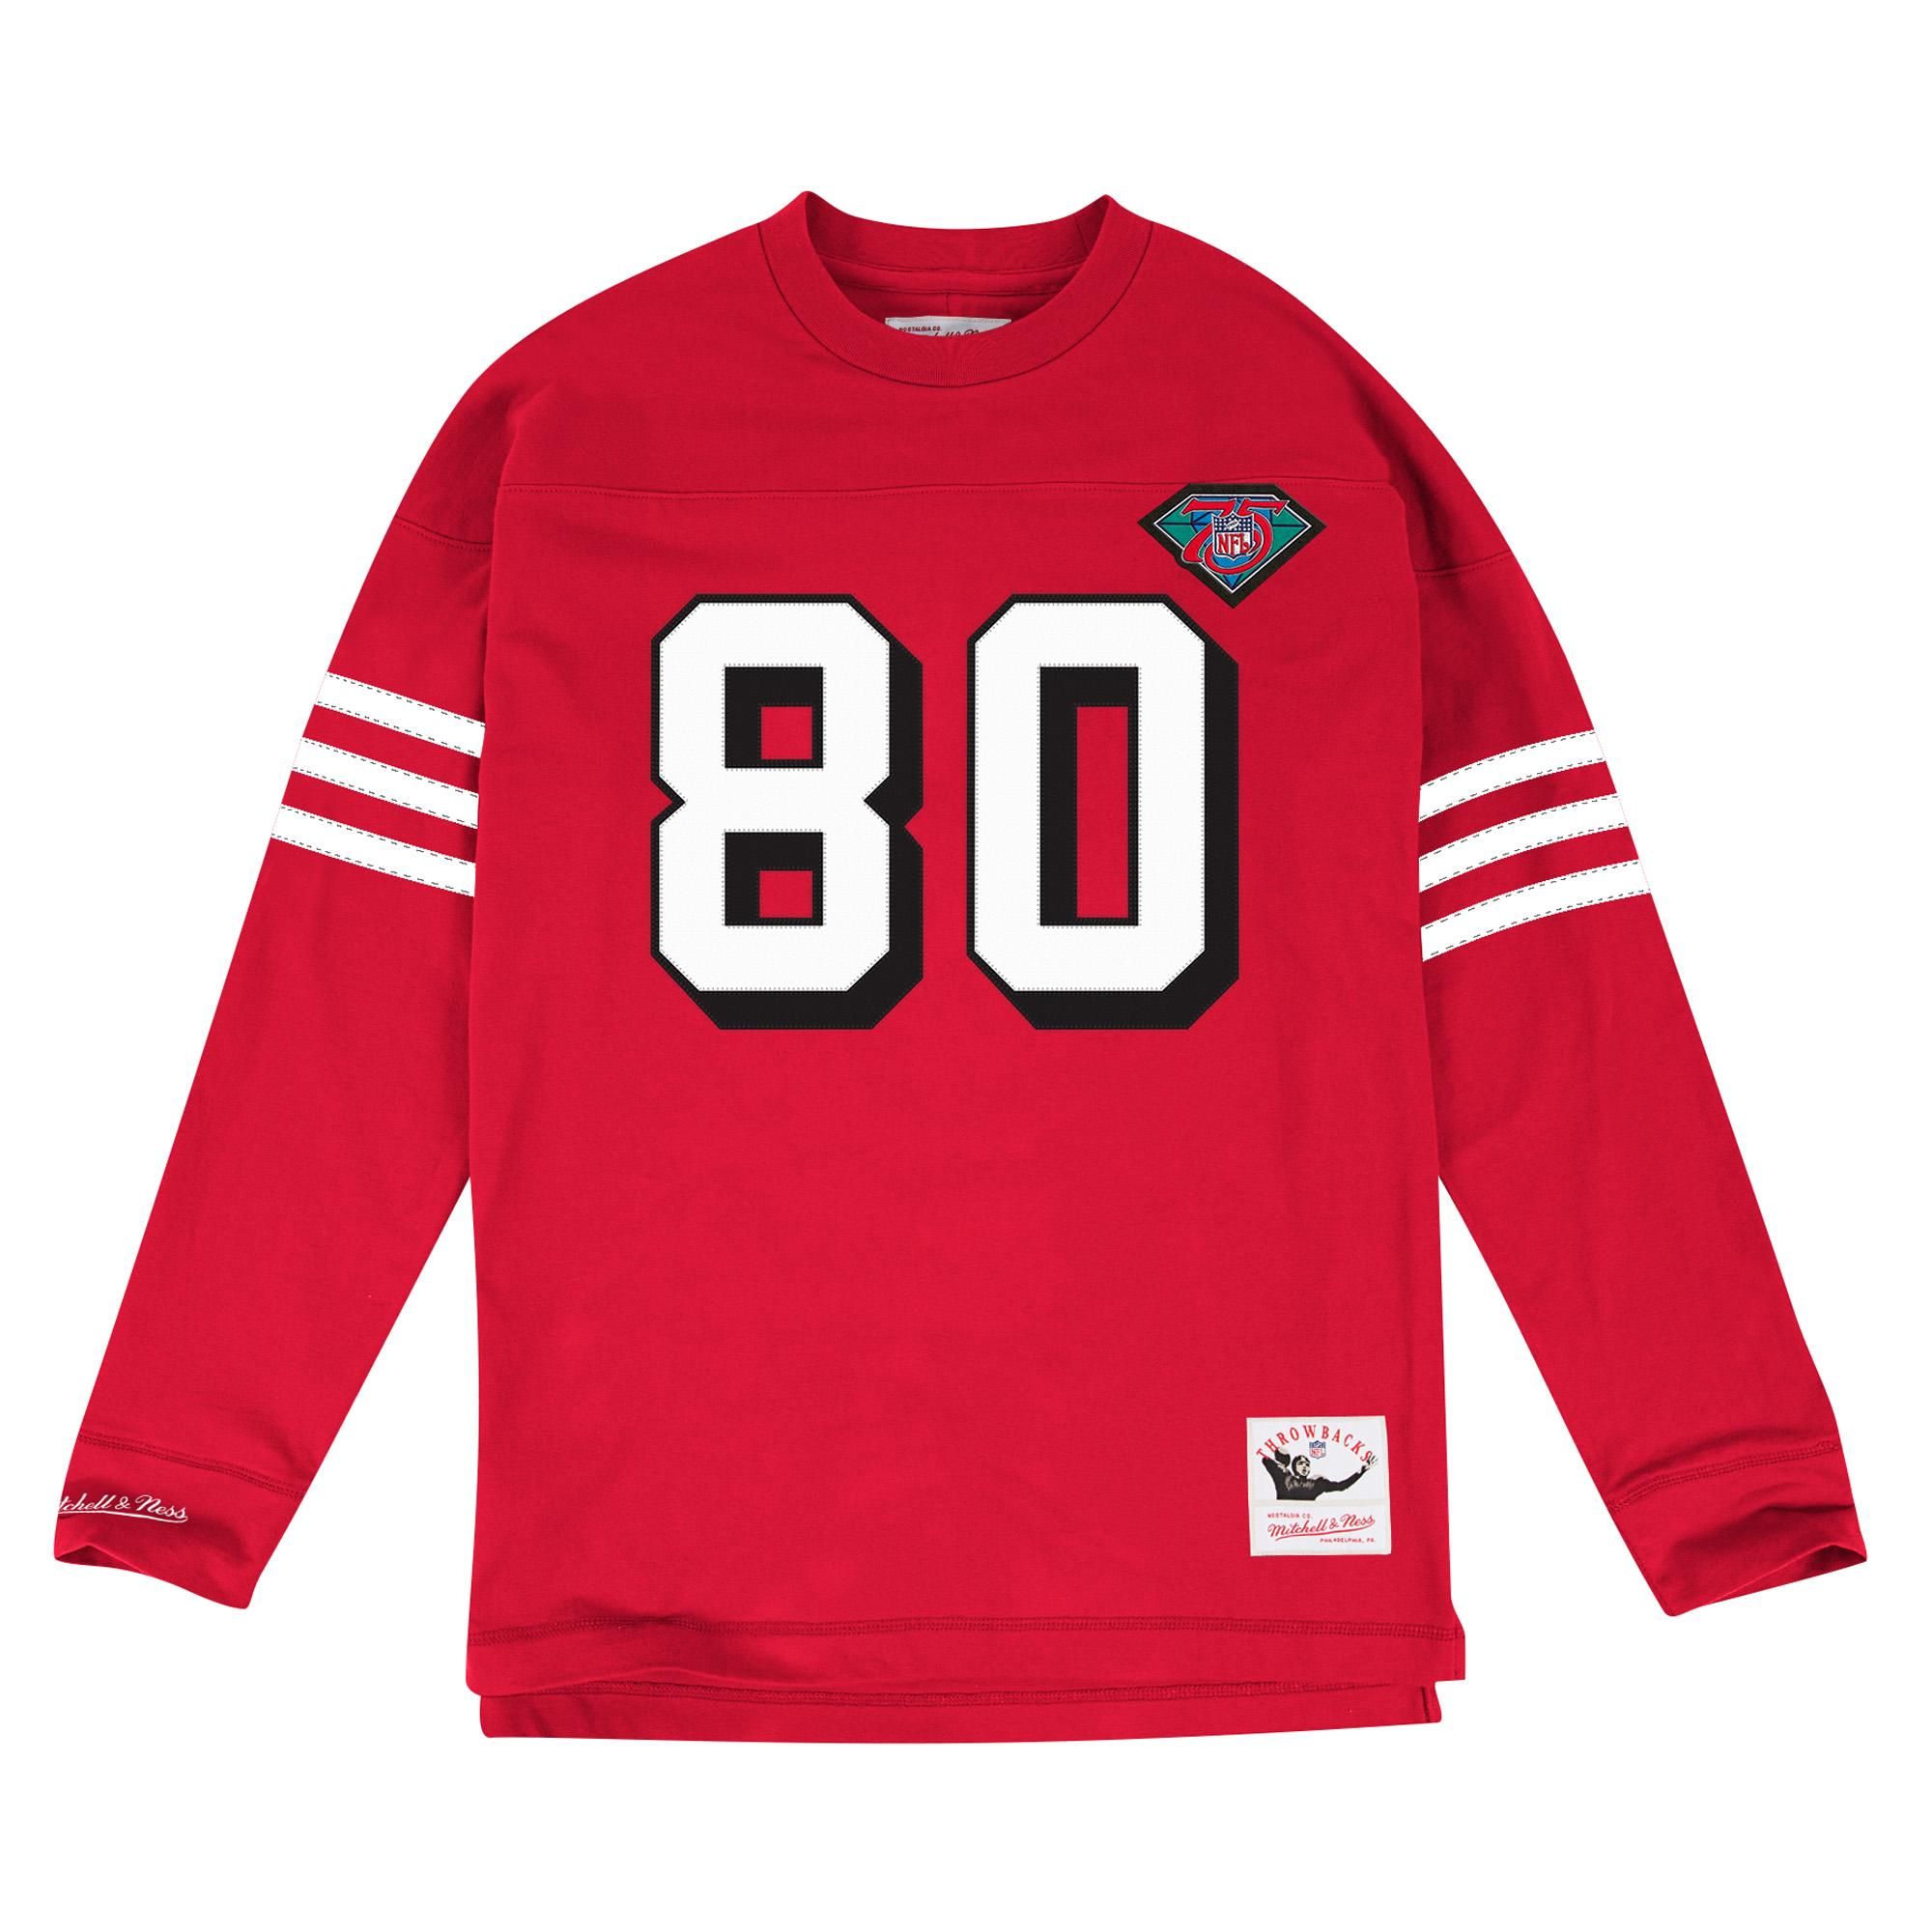 377a1dba9 Mitchell & Ness | Name & Number Long Sleeve San Francisco 49ers ...